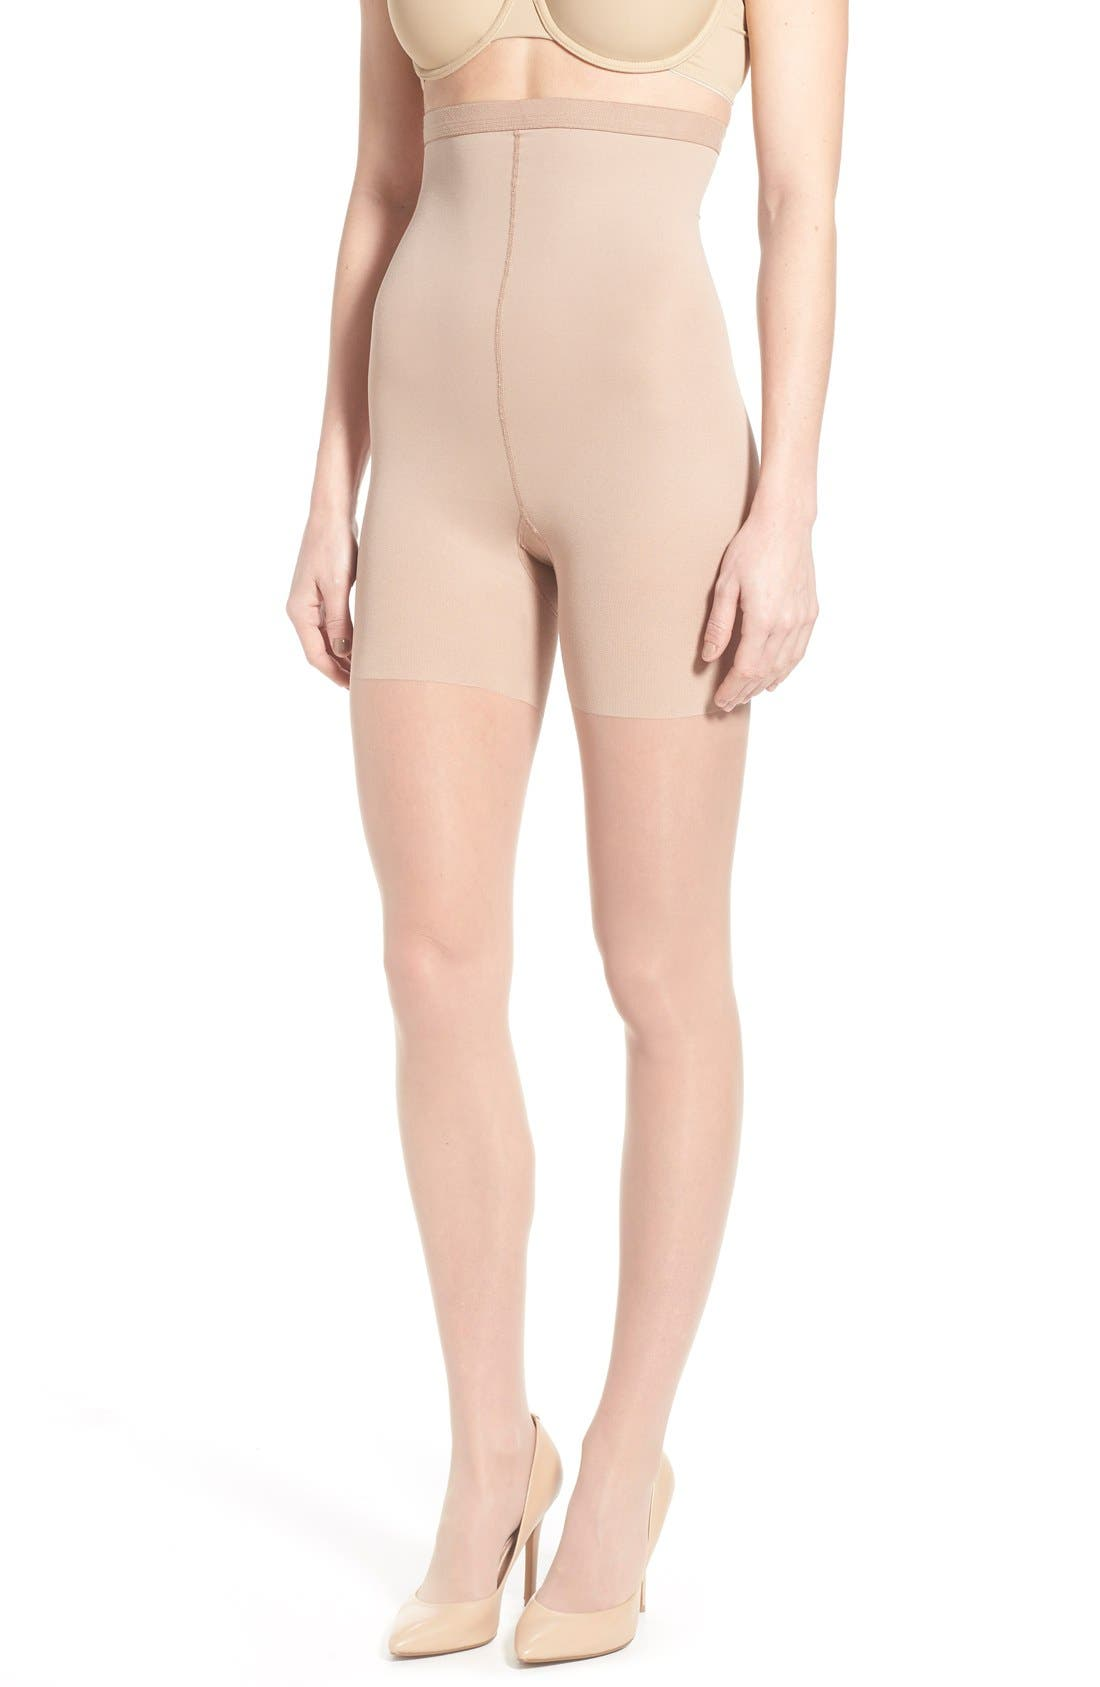 SPANX® Luxe High Waist Shaping Pantyhose